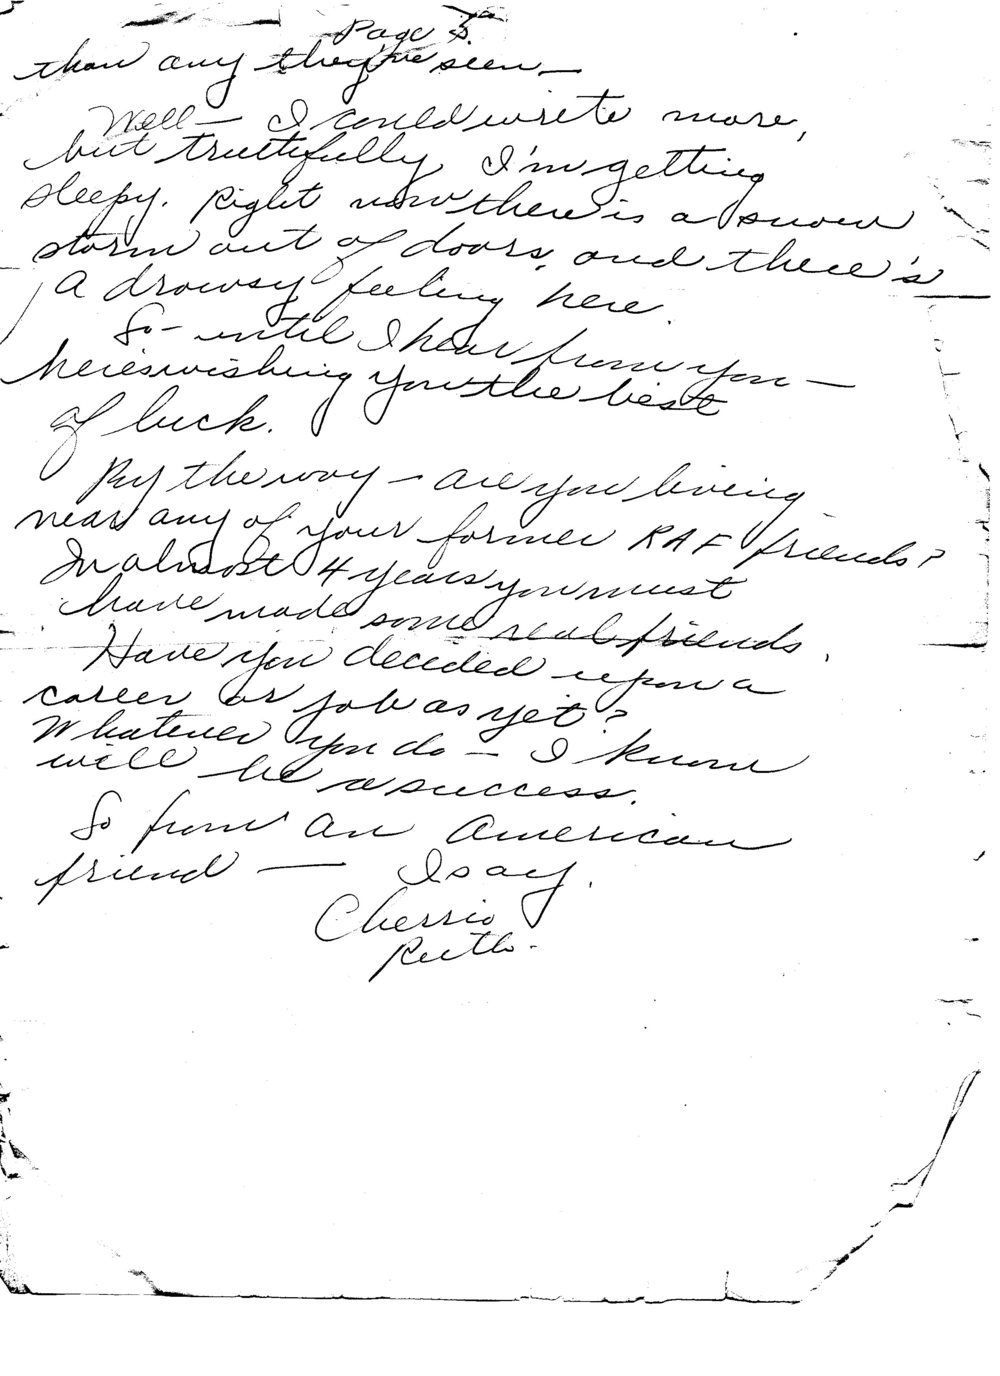 Ruth to Bob, Letter 6, February 1946, page 5 of 5